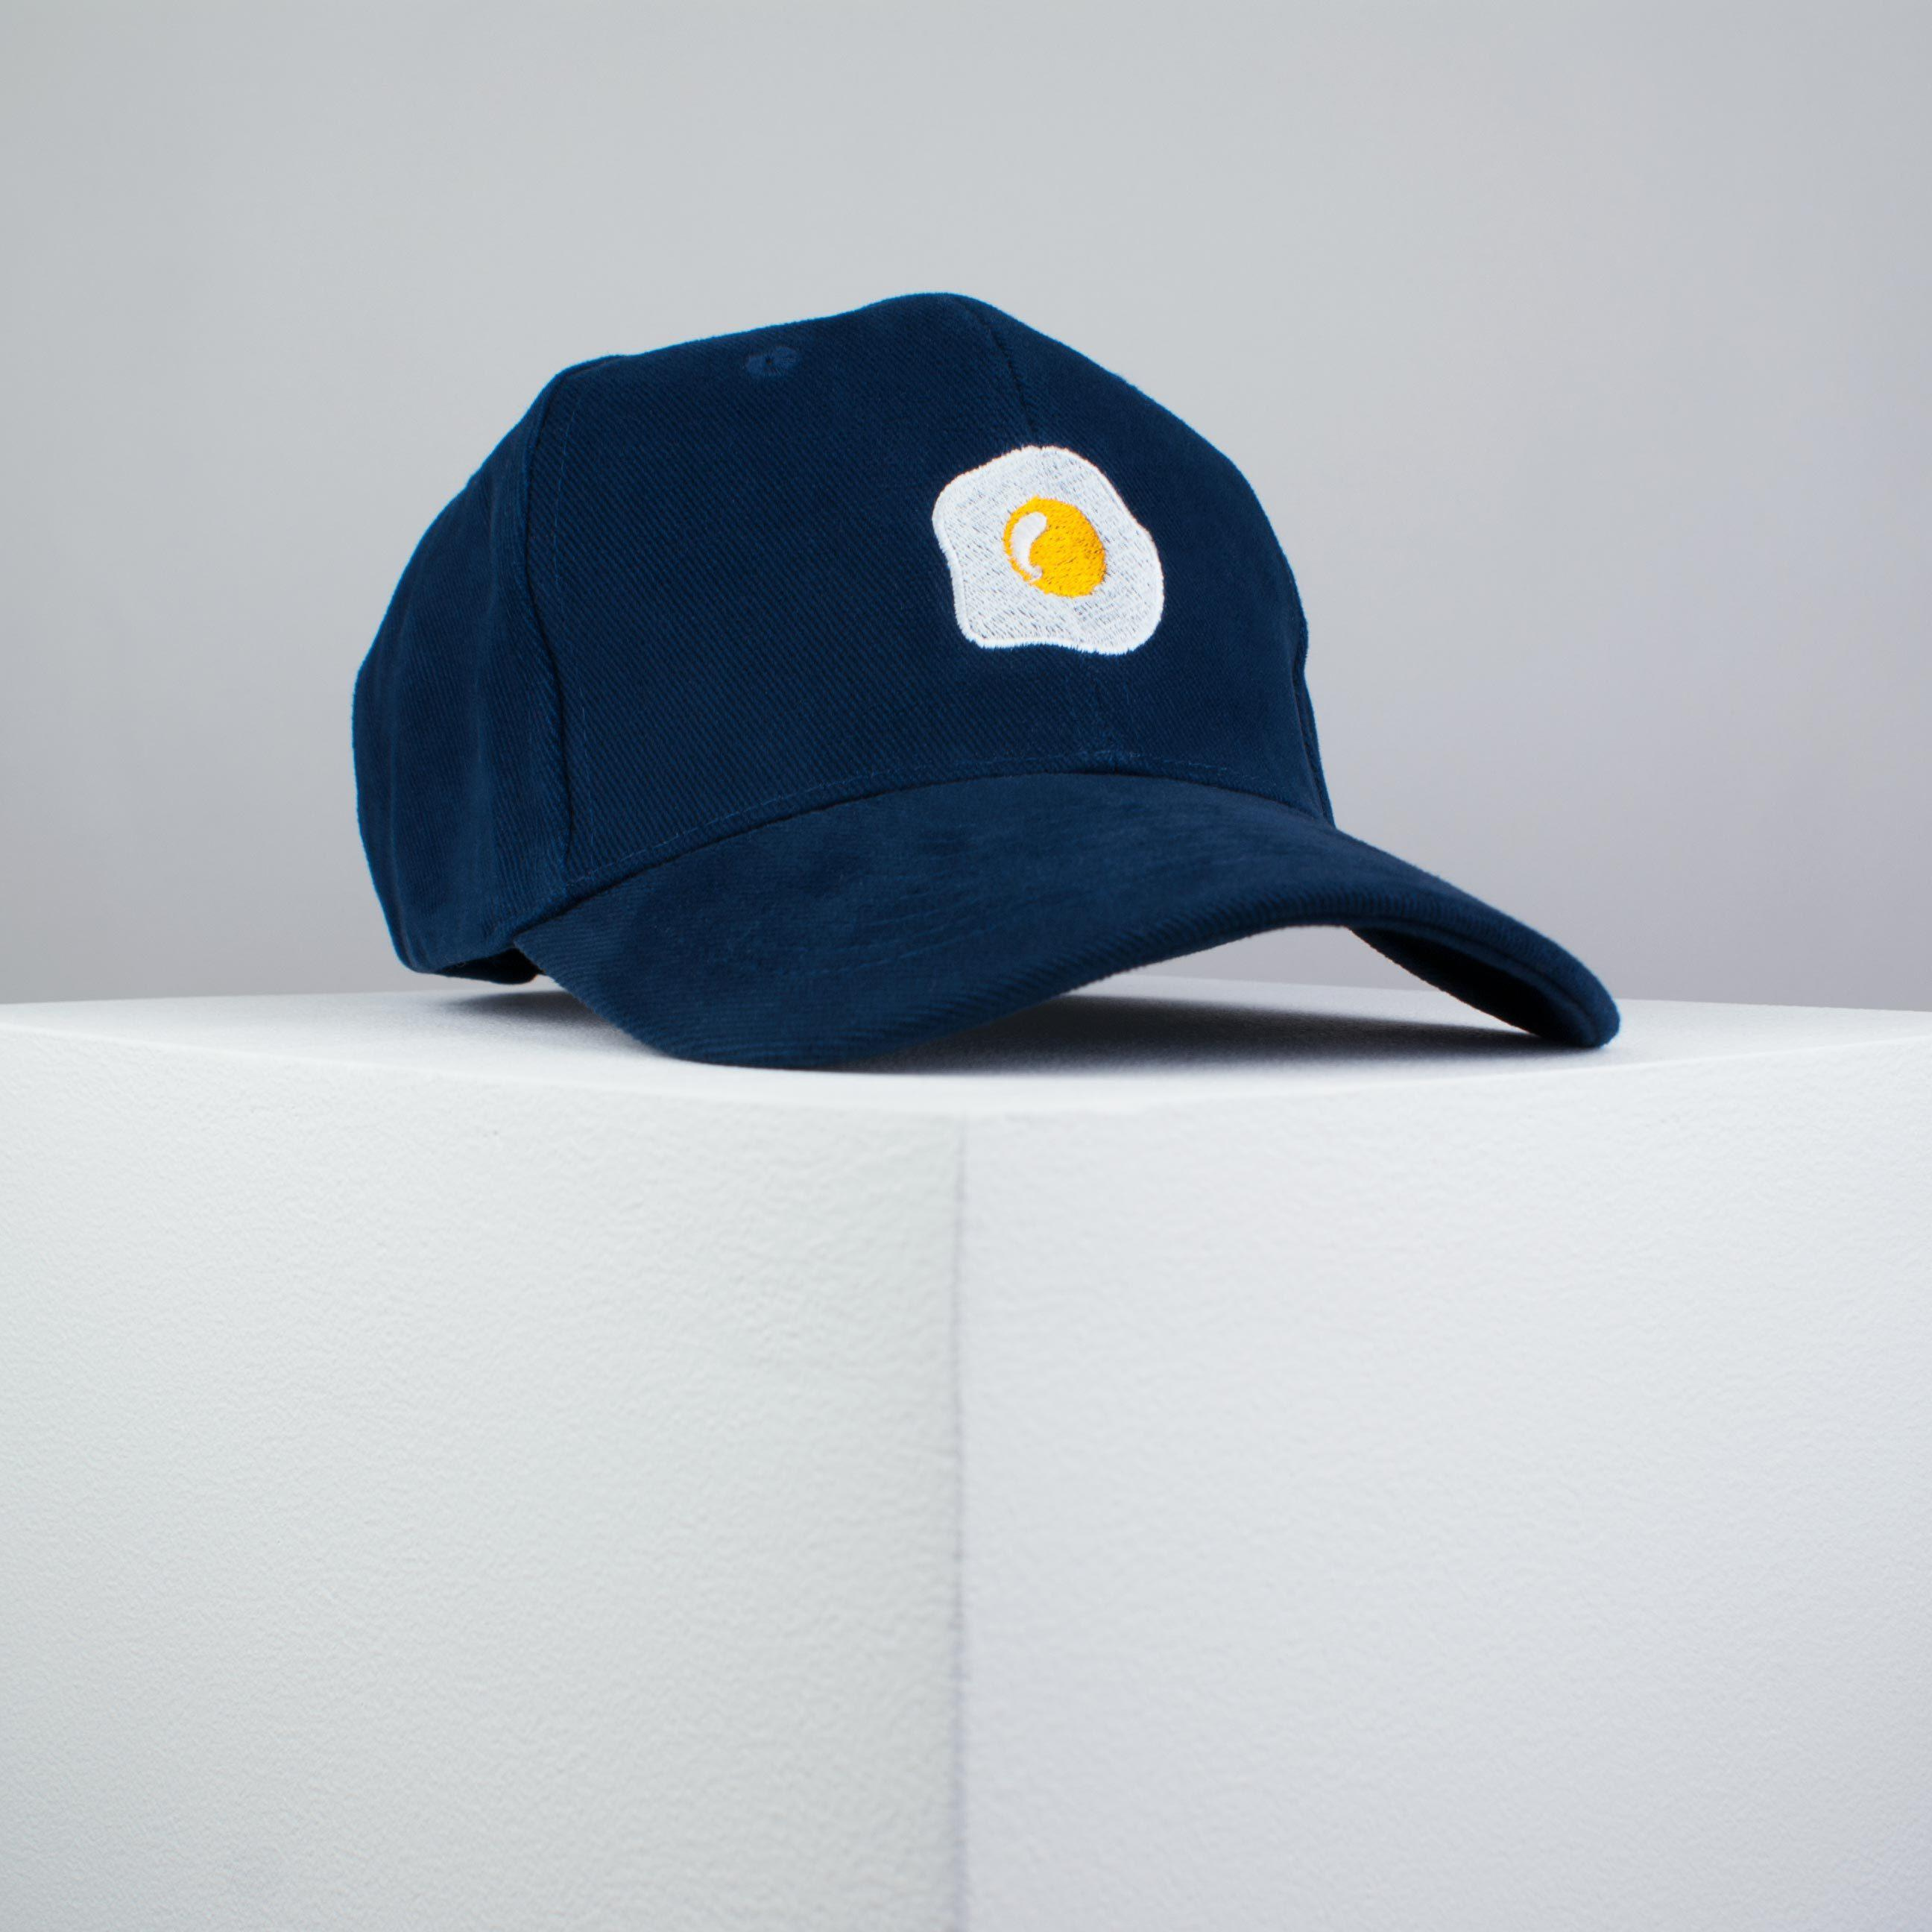 Fried egg embroidered baseball cap navy   food   patches   egg   embroidery    patch ... 4c749f2eda0b